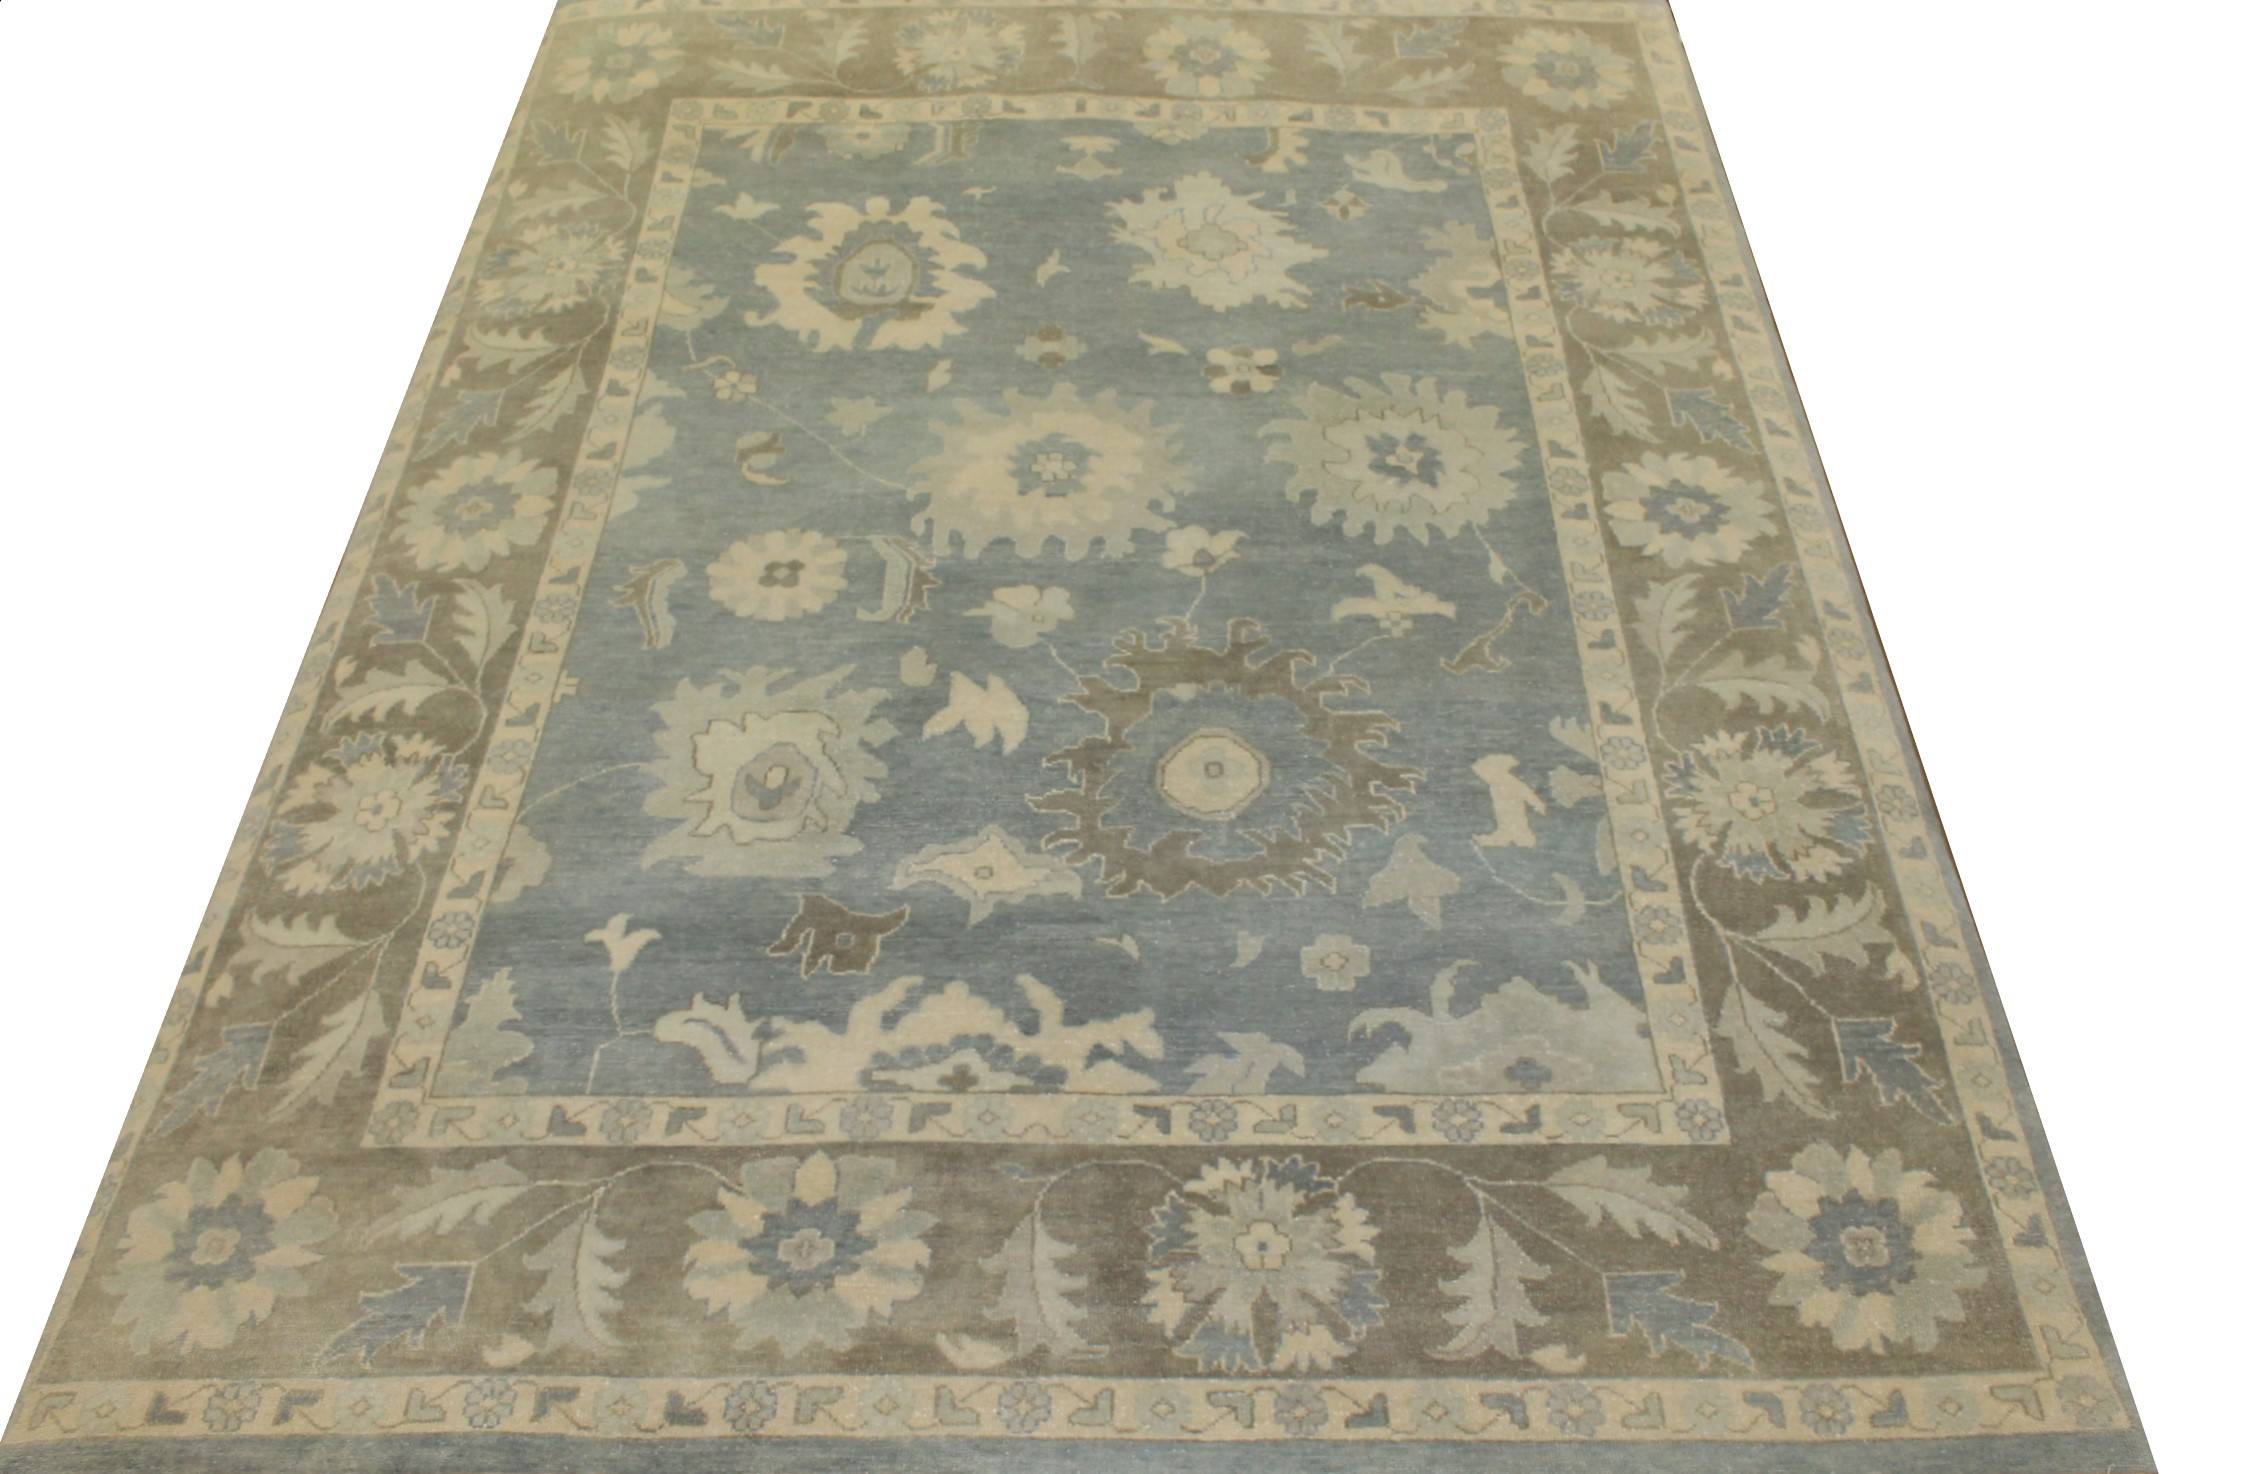 8x10 Oushak Hand Knotted Wool Area Rug - MR17925